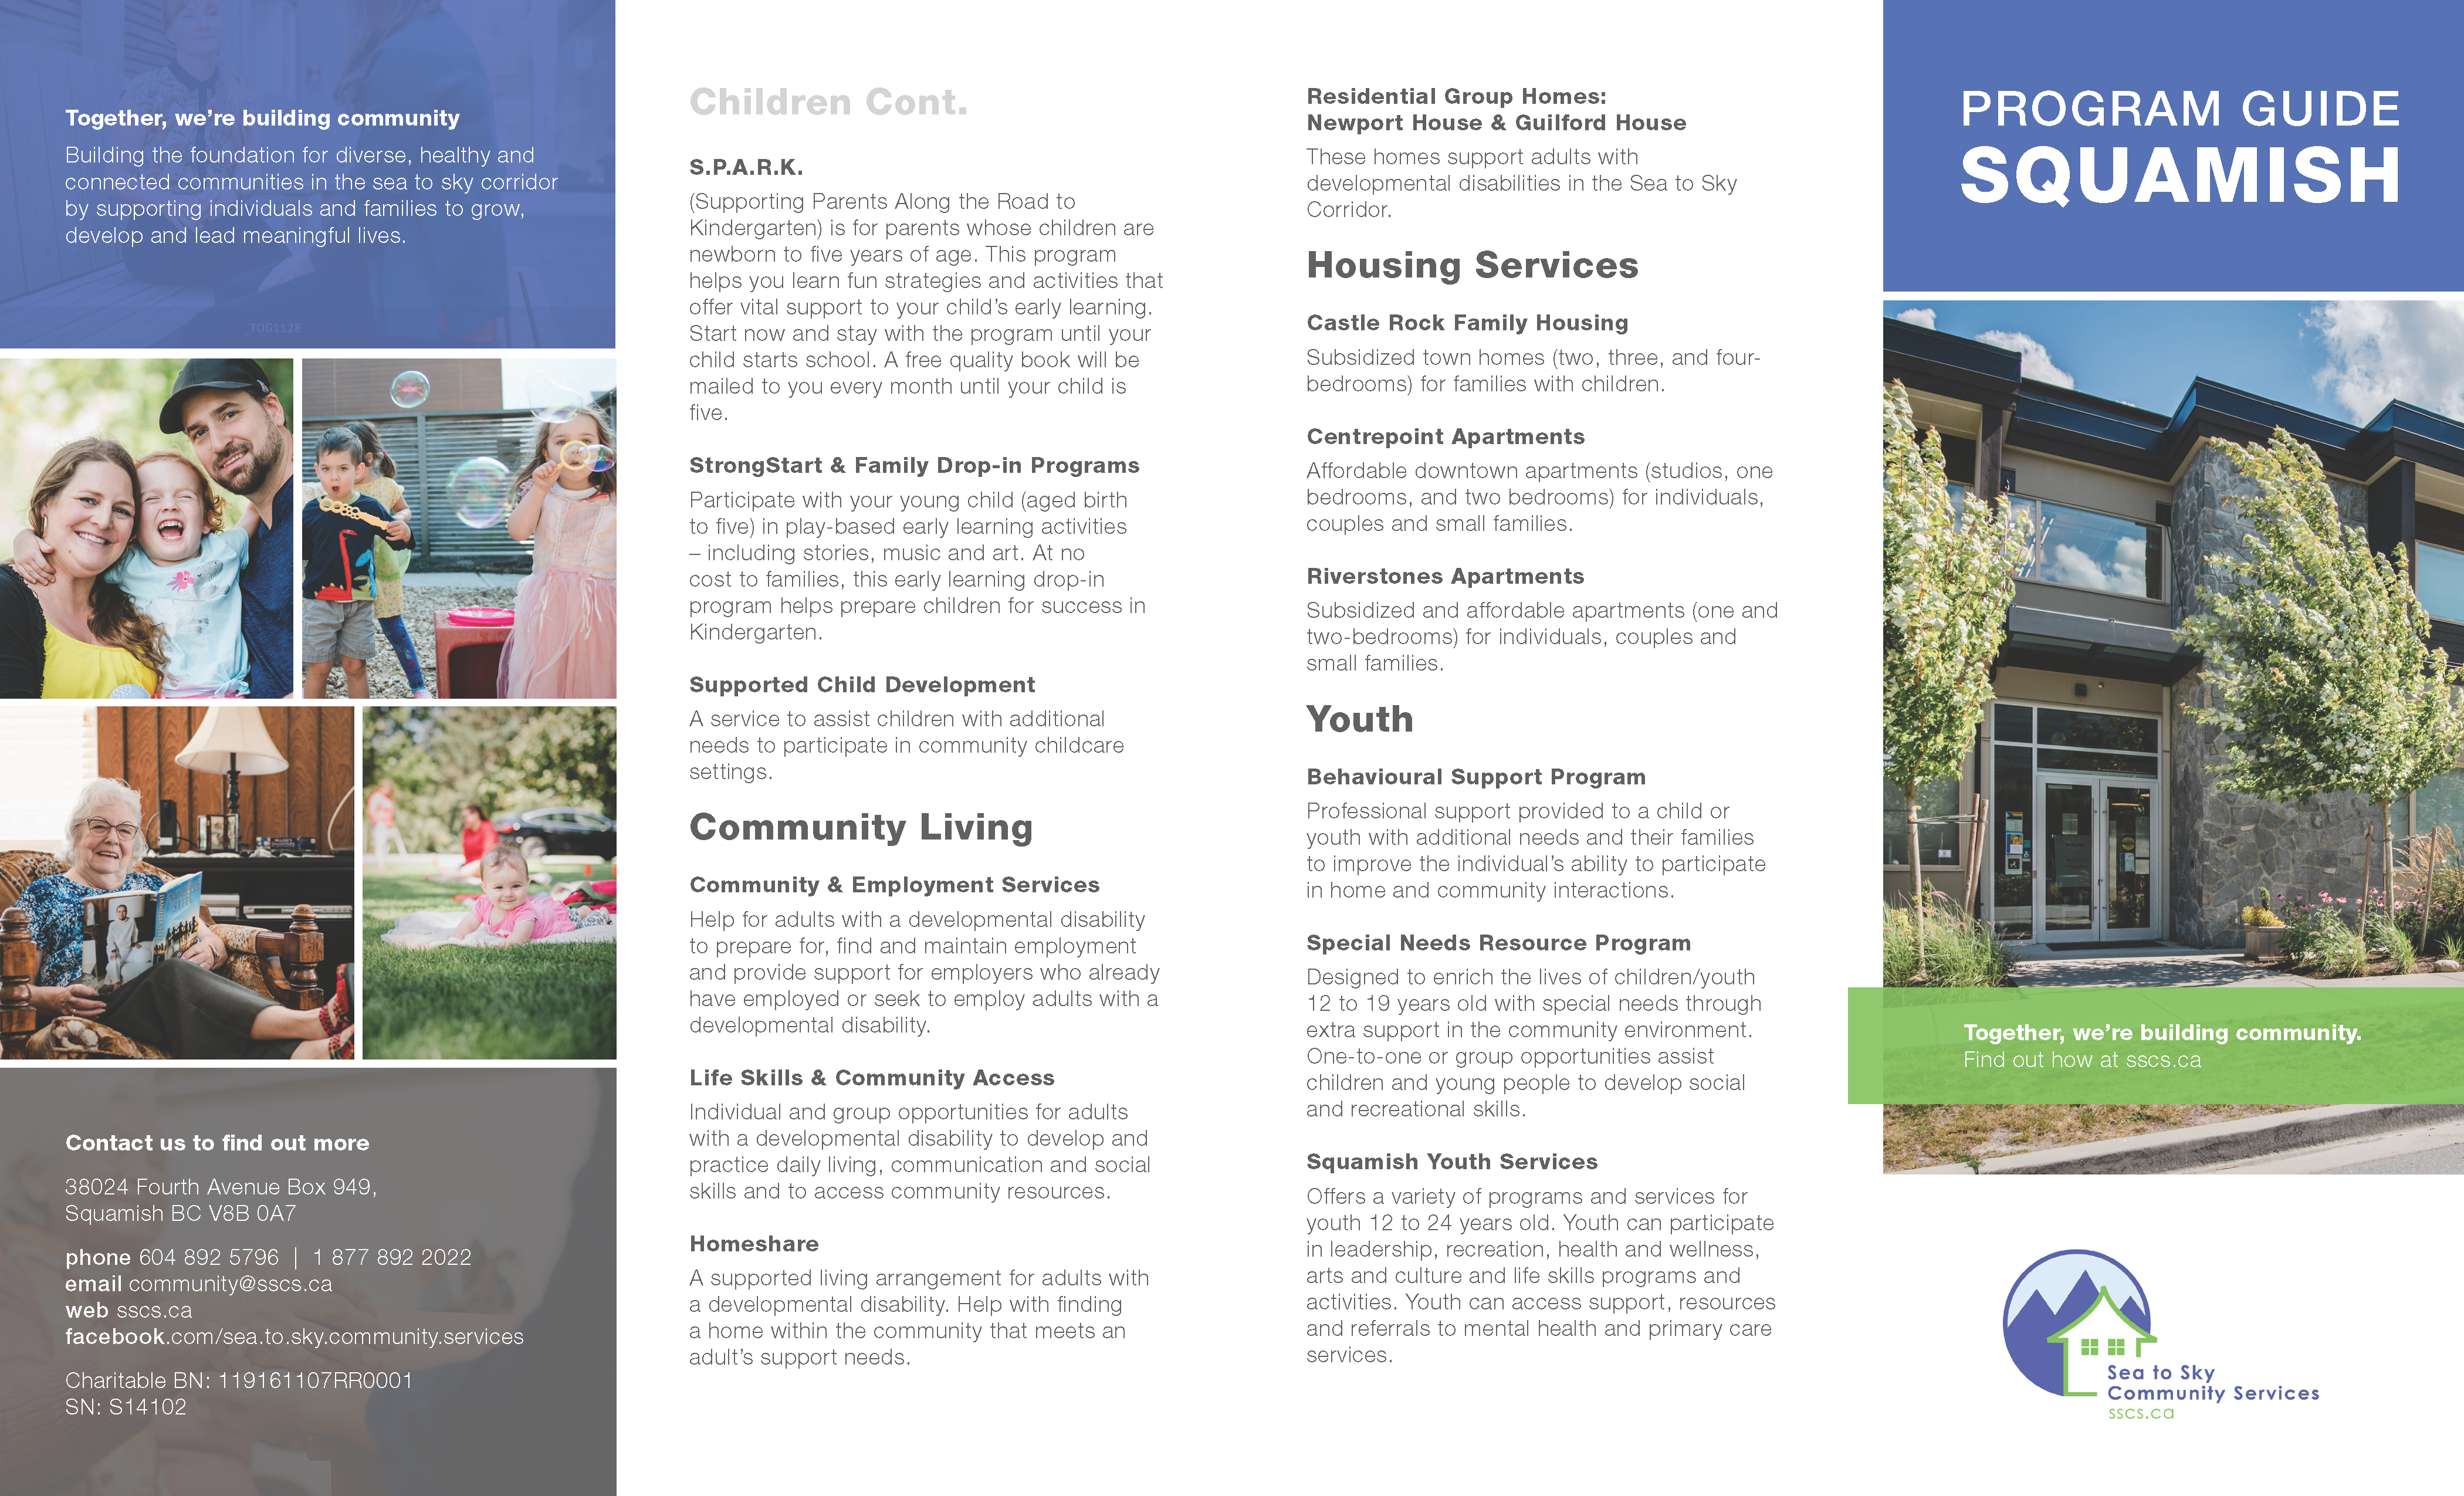 Squamish Program Guide